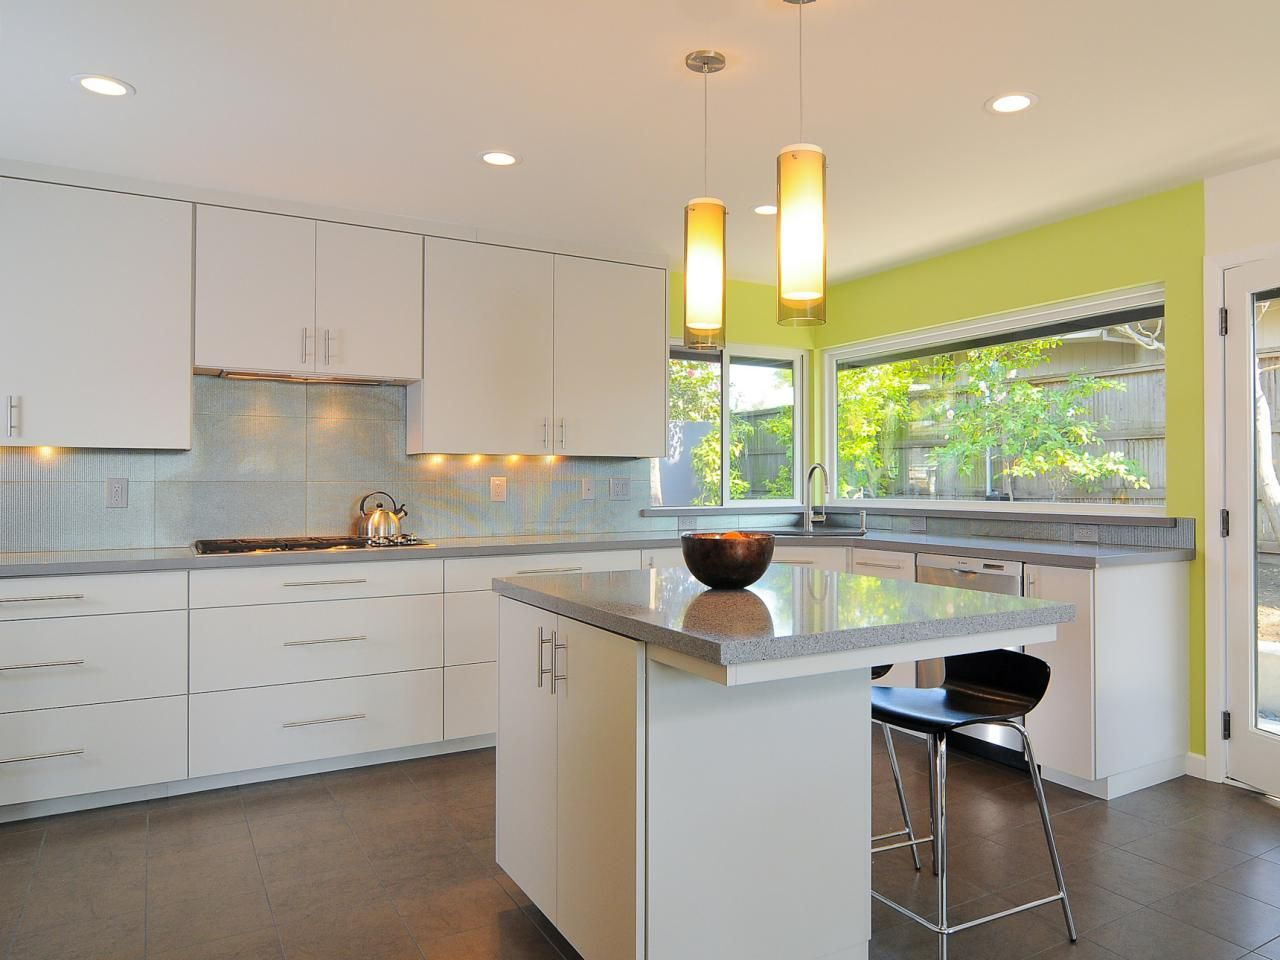 Kitchen Designer Salary Amusing Pictures Of Kitchen Cabinets Beautiful Storage & Display Options Decorating Design